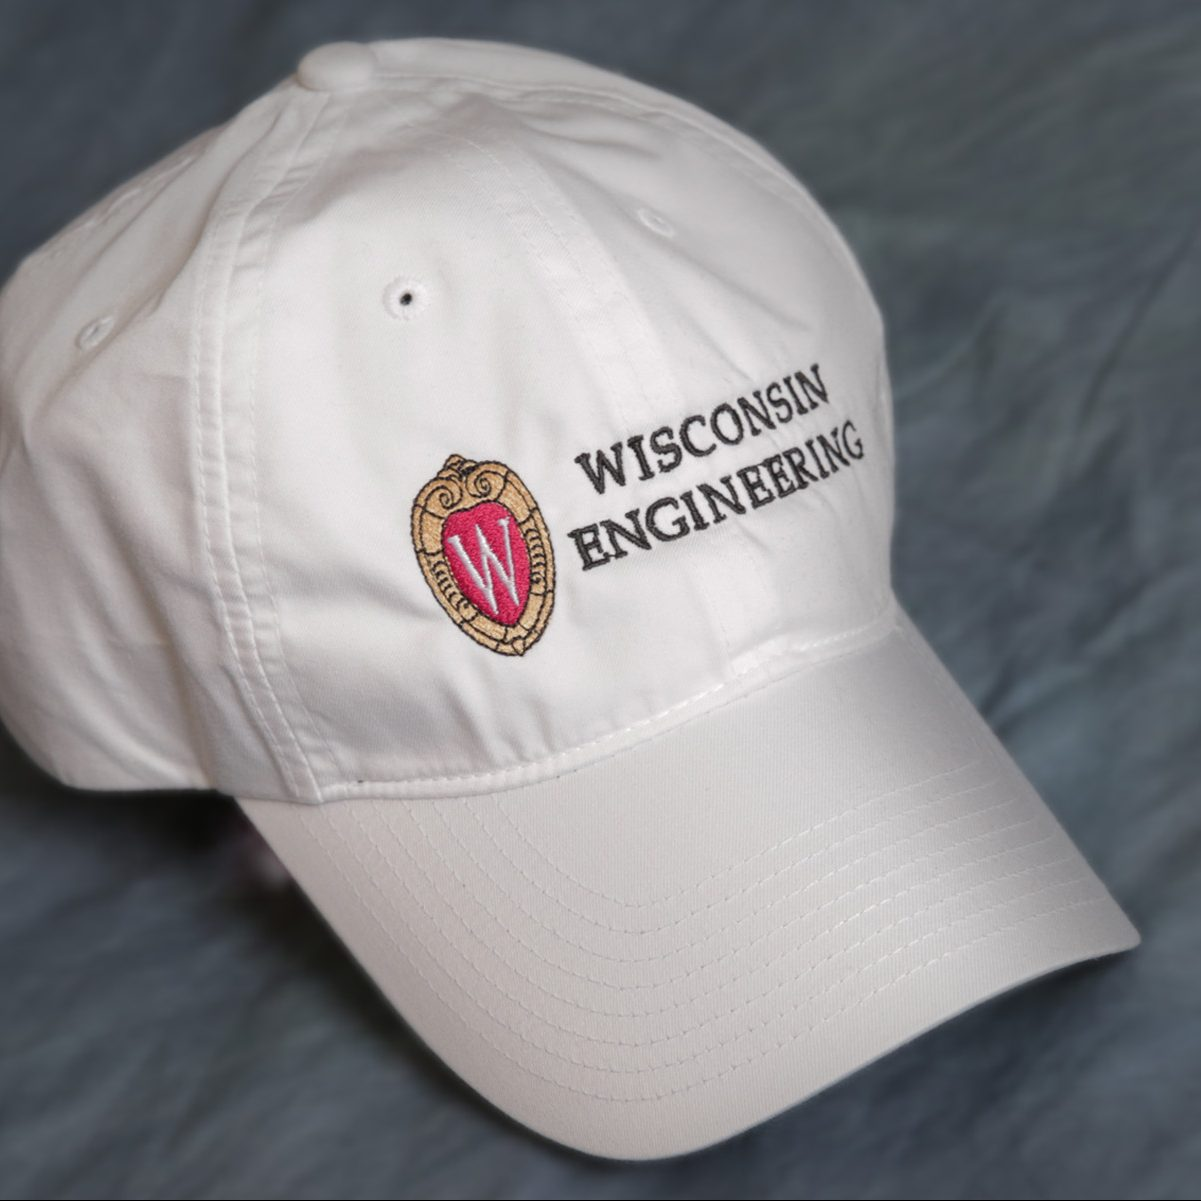 College of Engineering cap in white